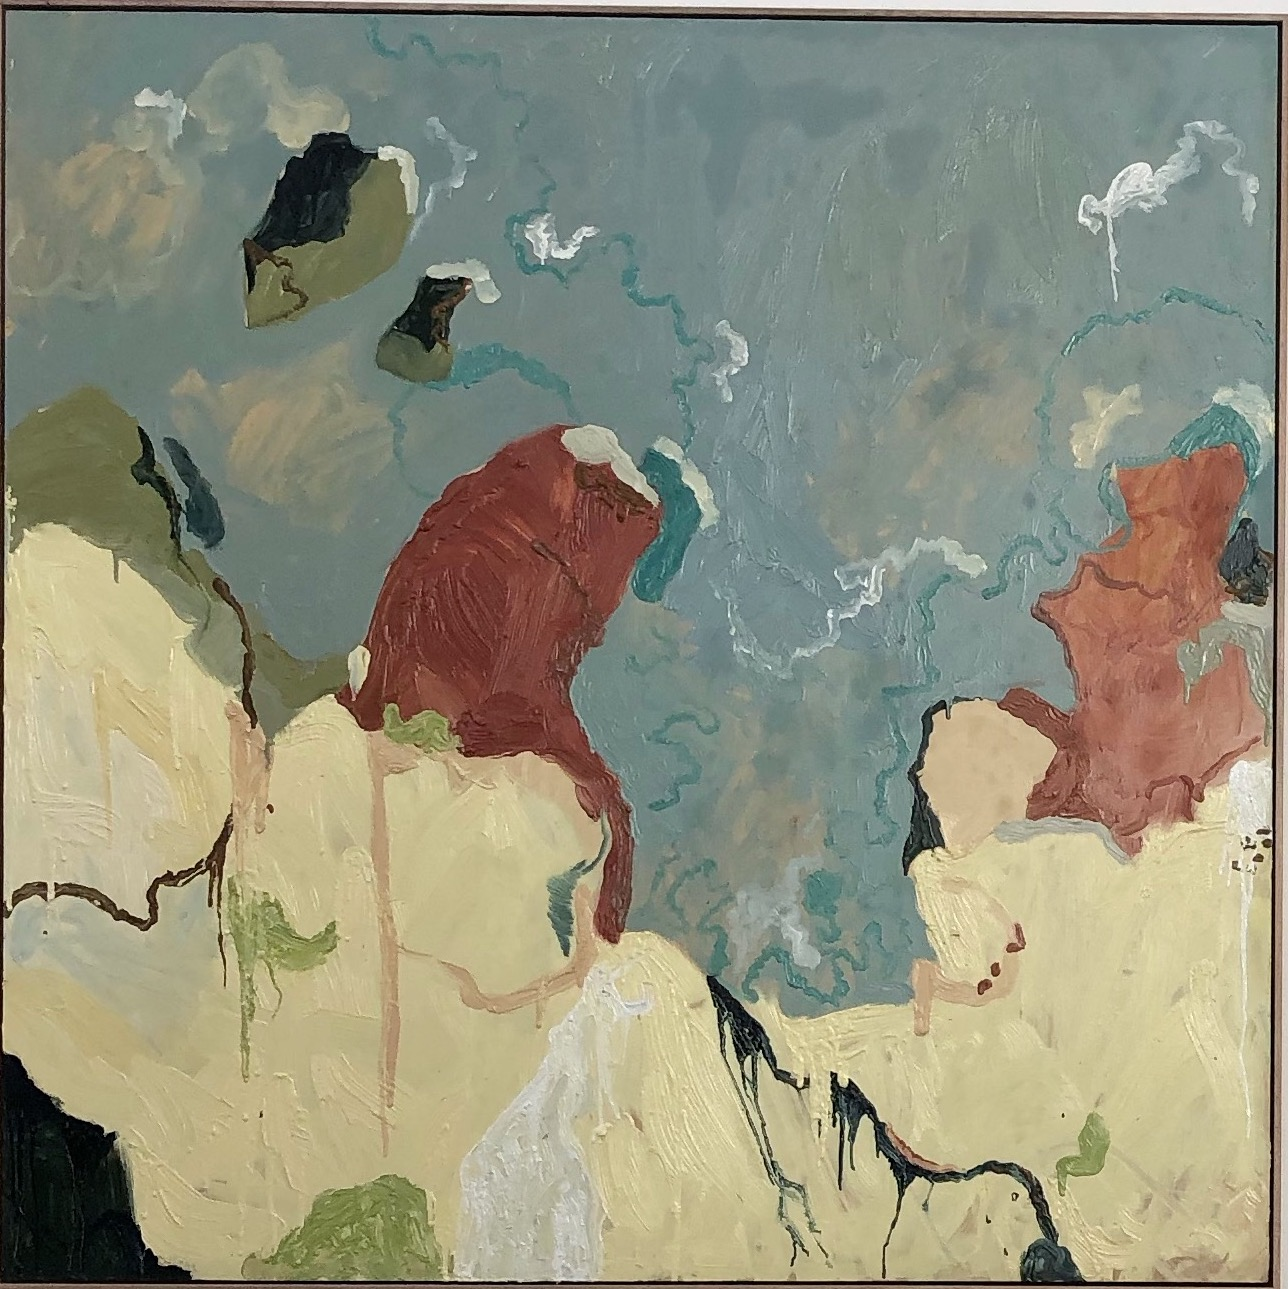 1. Michelle Teear Ocean Edge 2019 oil on plywood 120x120cm framed $2200.00